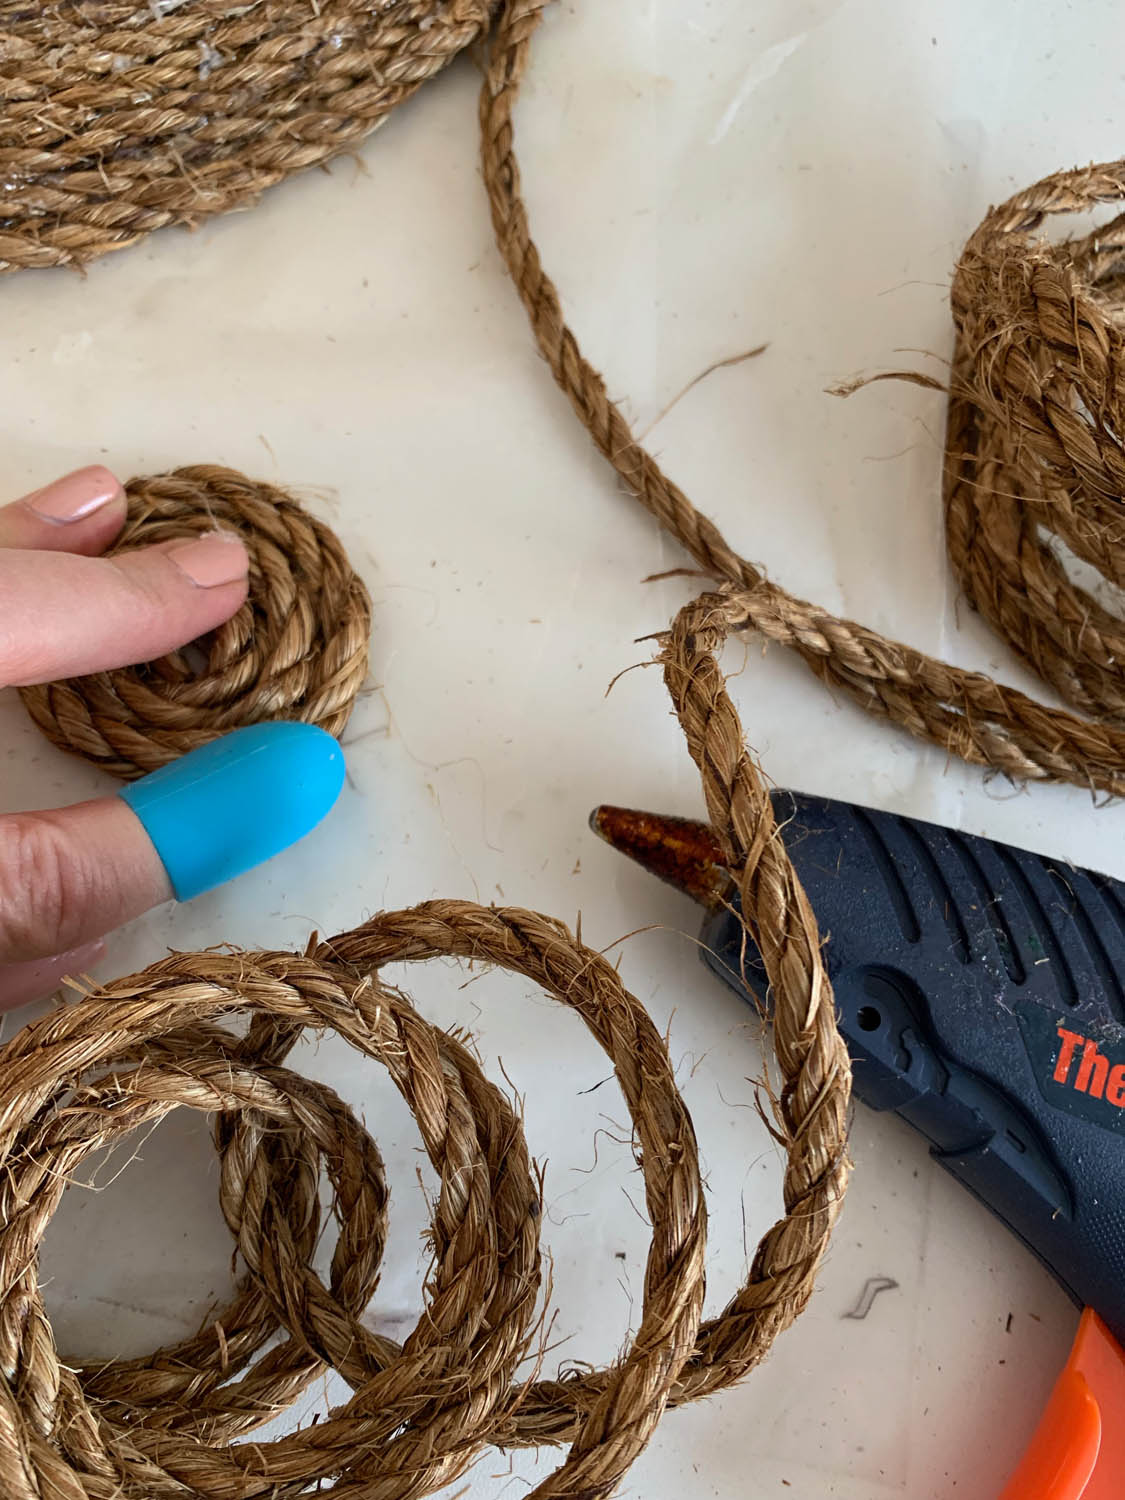 Fingers tightly coiling and hot gluing rope to make rustic rope placemat.